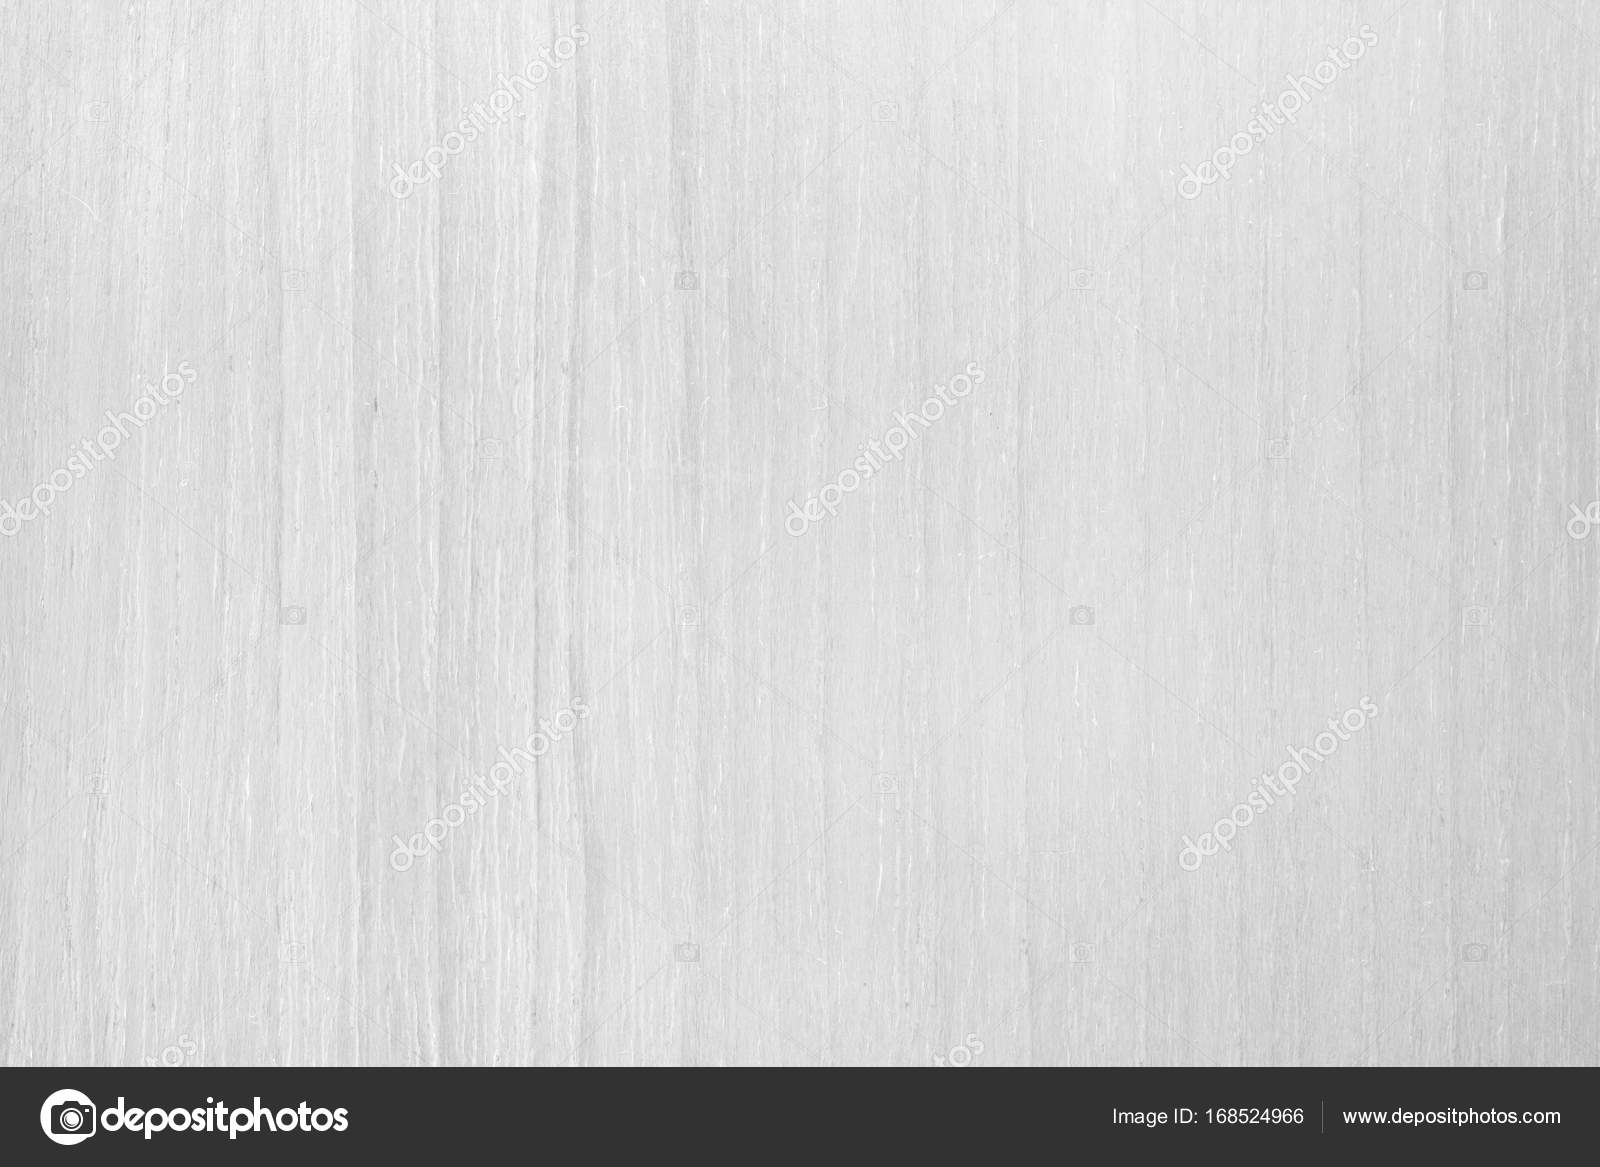 Close Up Of Rustic Wall Made White Wood Table Planks Texture Background Empty Template For Your Design